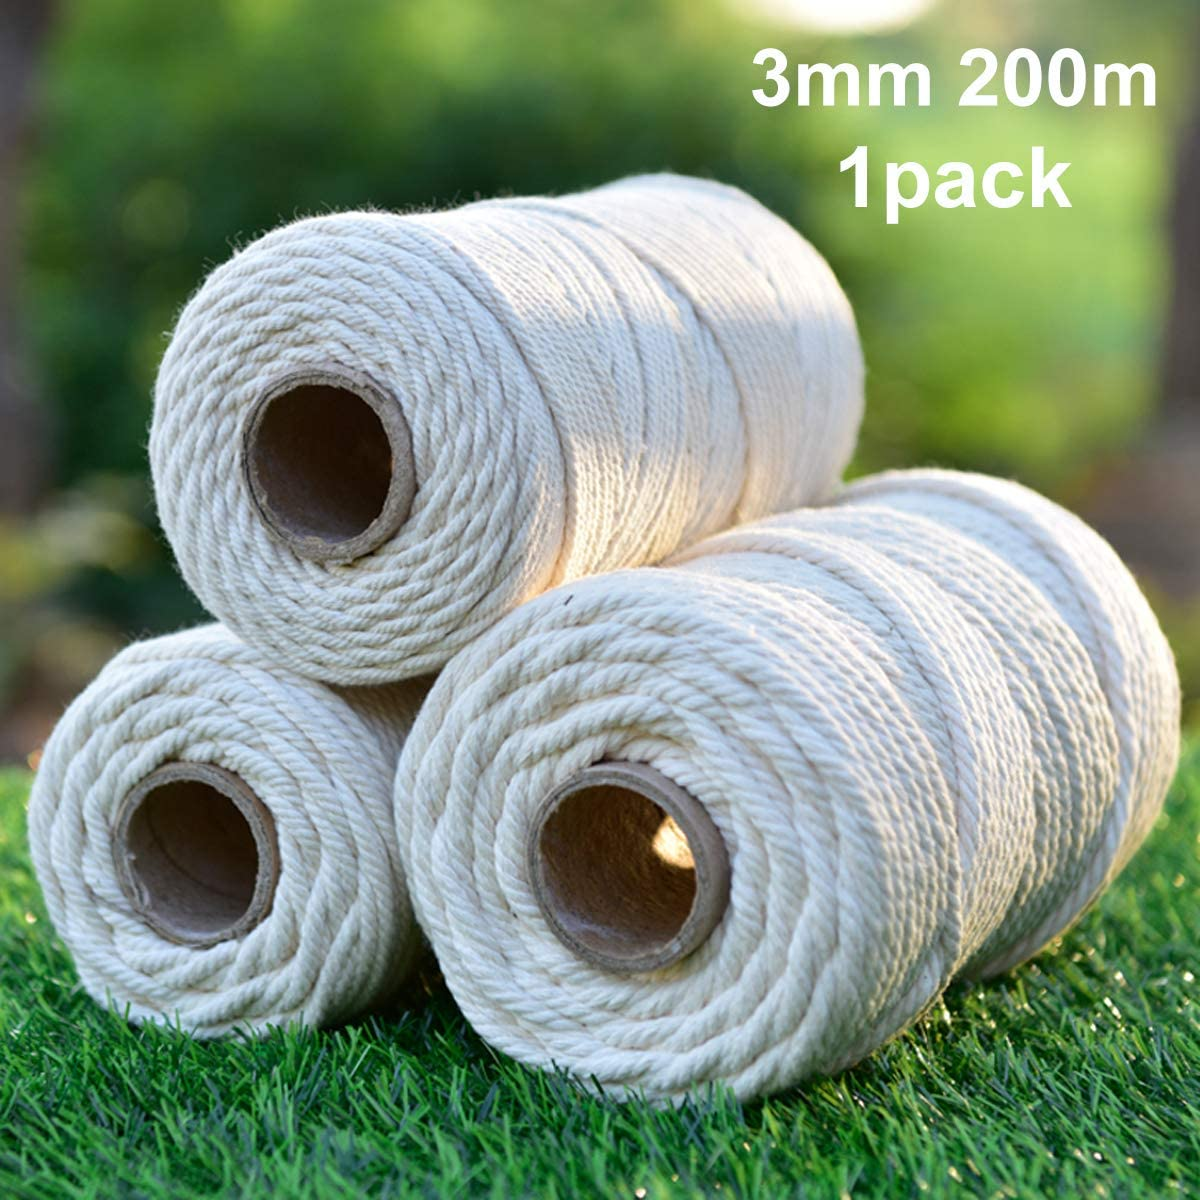 Macrame Cord Cotton Rope 4mm 100m 1 Pack,Natural Cotton Cord 4 Strand Twisted Macrame Twine for Hand-Knitted Macrame Supplies,4mm Cotton Rope for Handmade Wall Hanging Weaving Basketry Tapestry